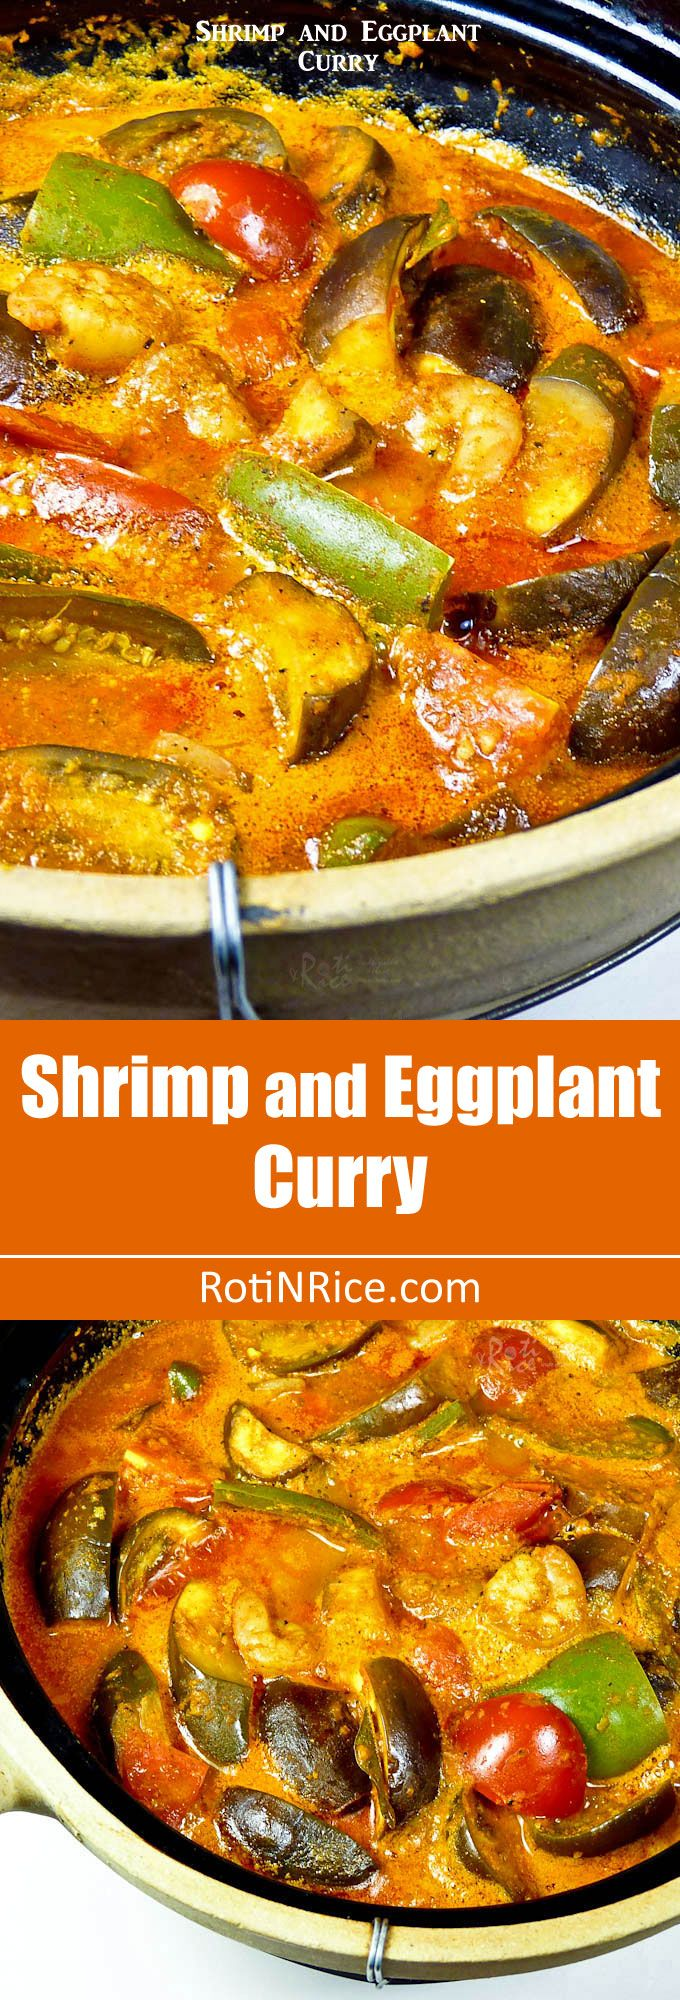 This spicy tangy Shrimp and Eggplant Curry is delicious served with steamed rice and papadums. Can be prepared in 30 minutes. | RotiNRice.com